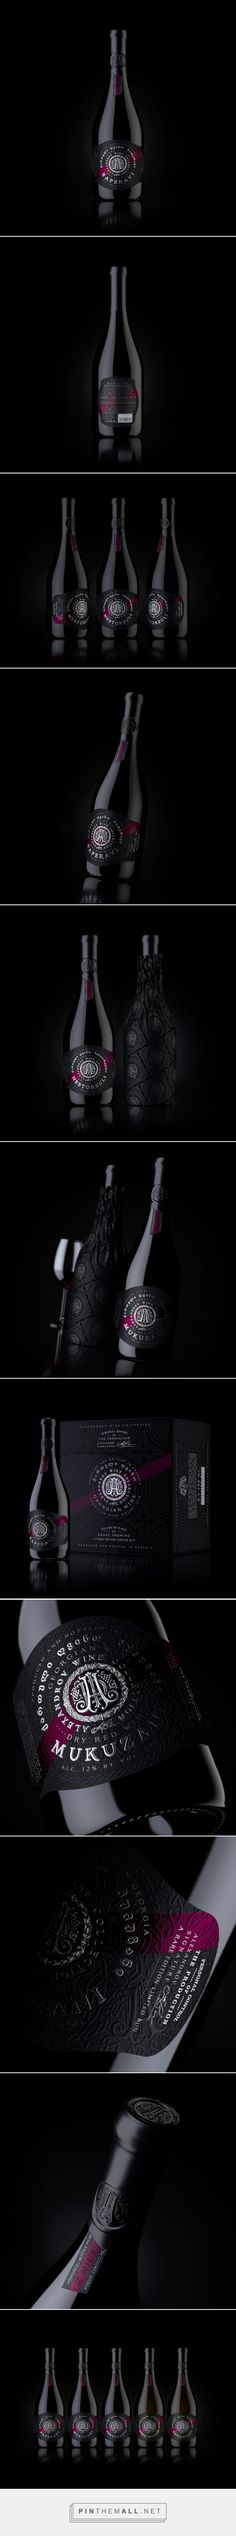 Alexandrov Collection wine packaging design by grand buro - http://www.packagingoftheworld.com/2017/01/alexandrov-collection.html